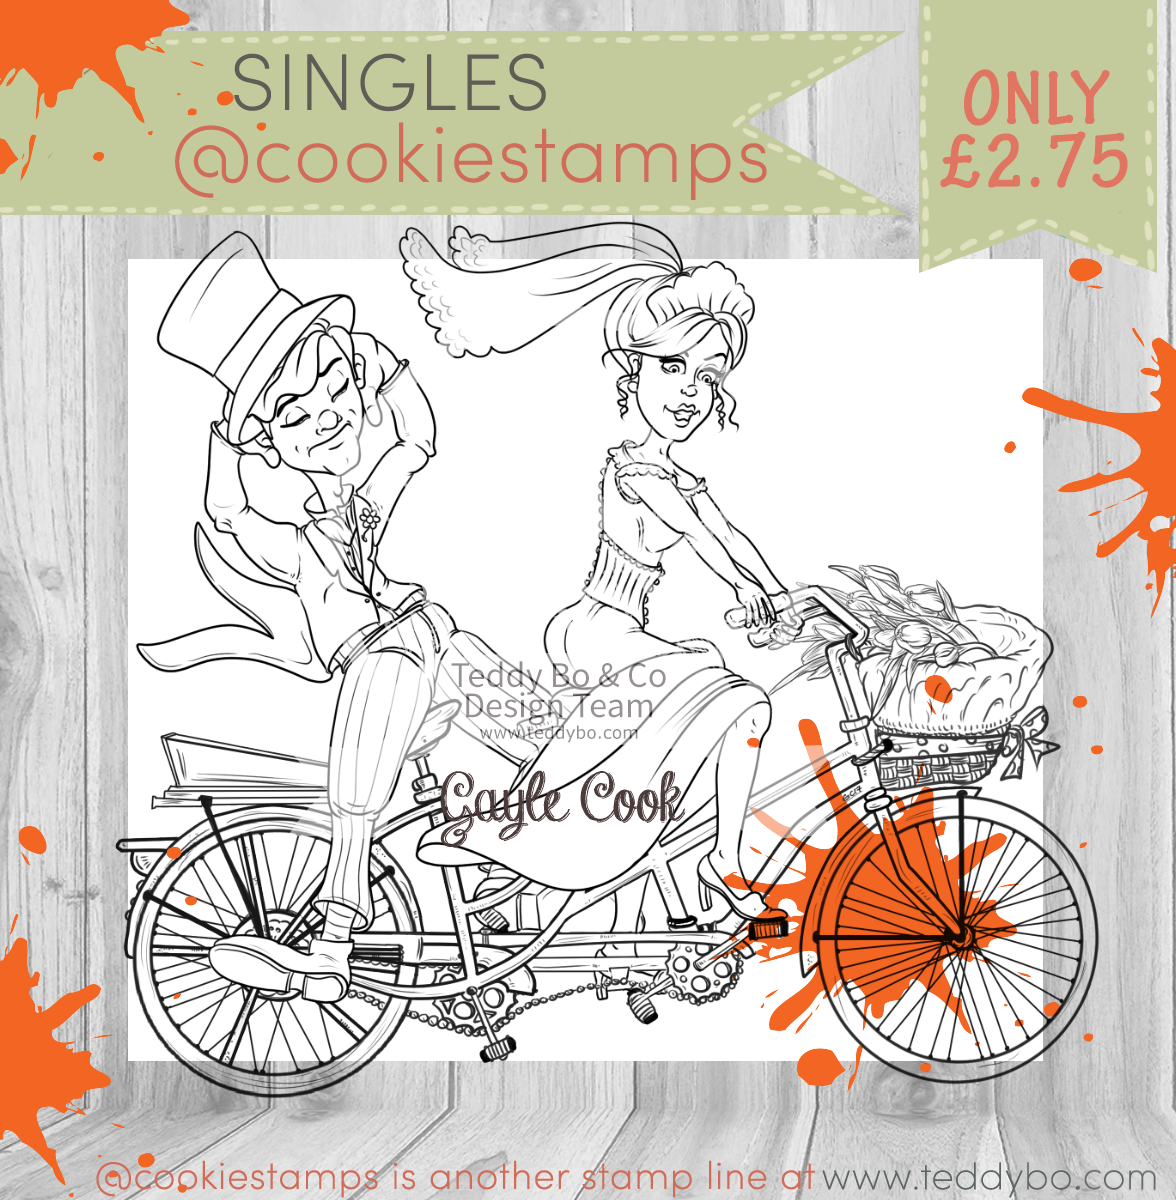 MYCOOKIESTAMPS_WEDDINGBIKES_02.png